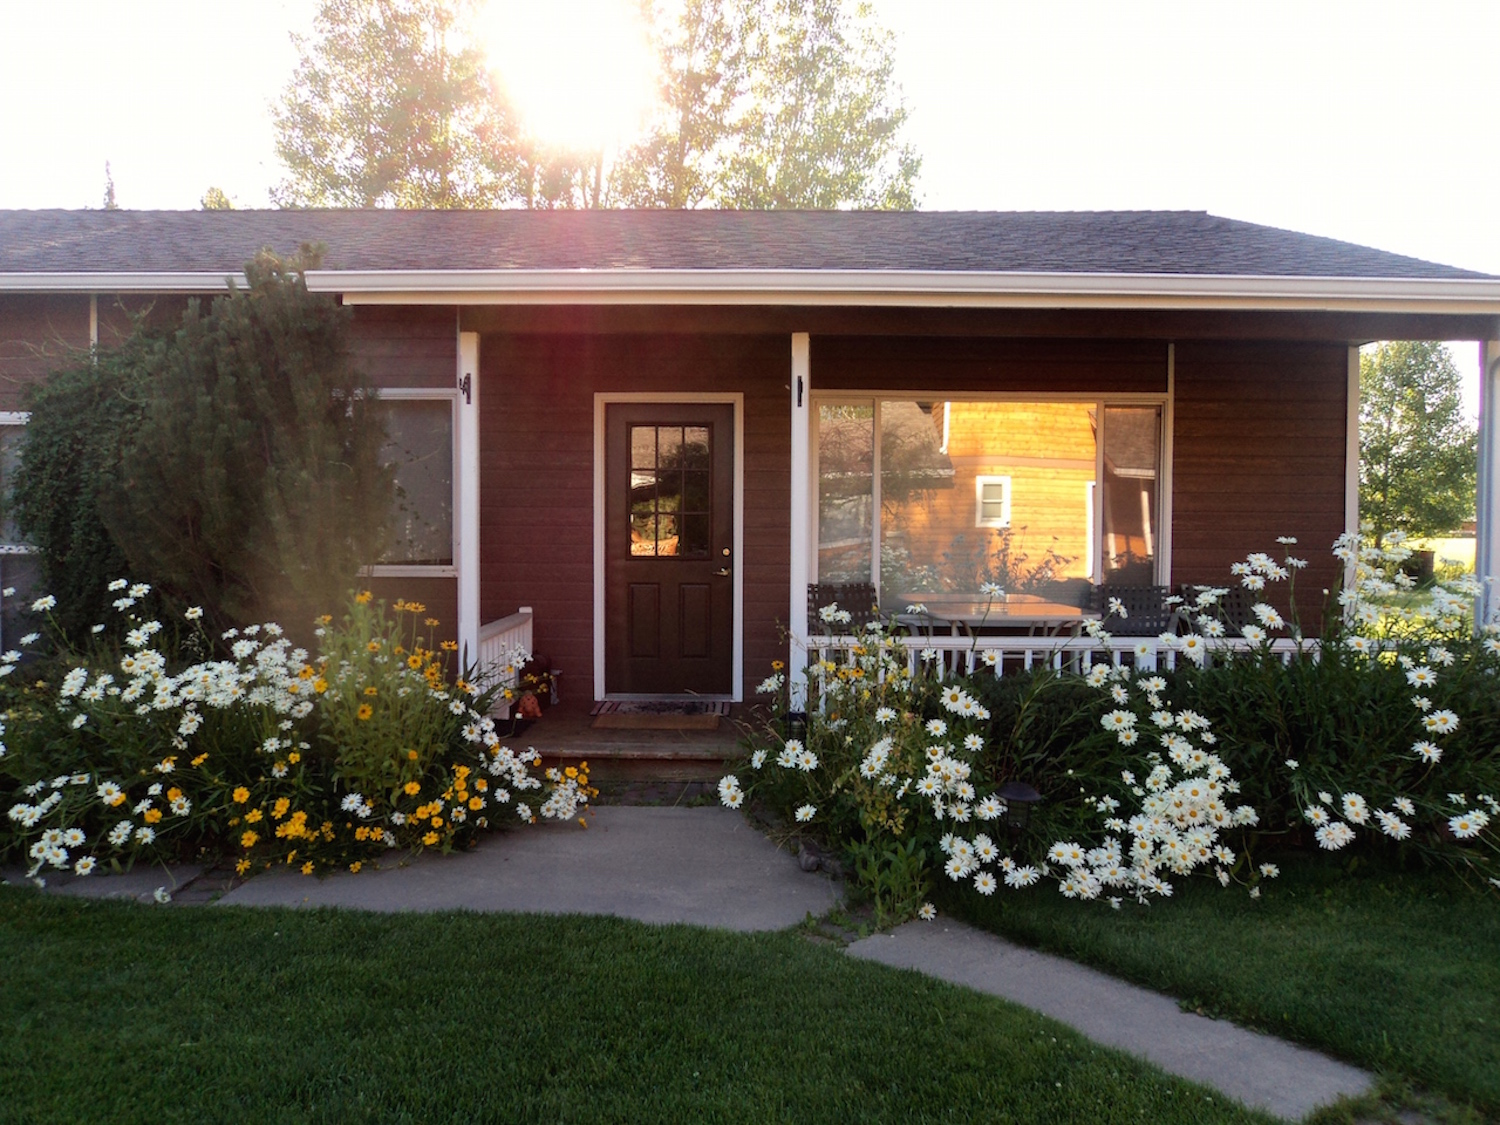 Guest House w: summer flowers.JPG